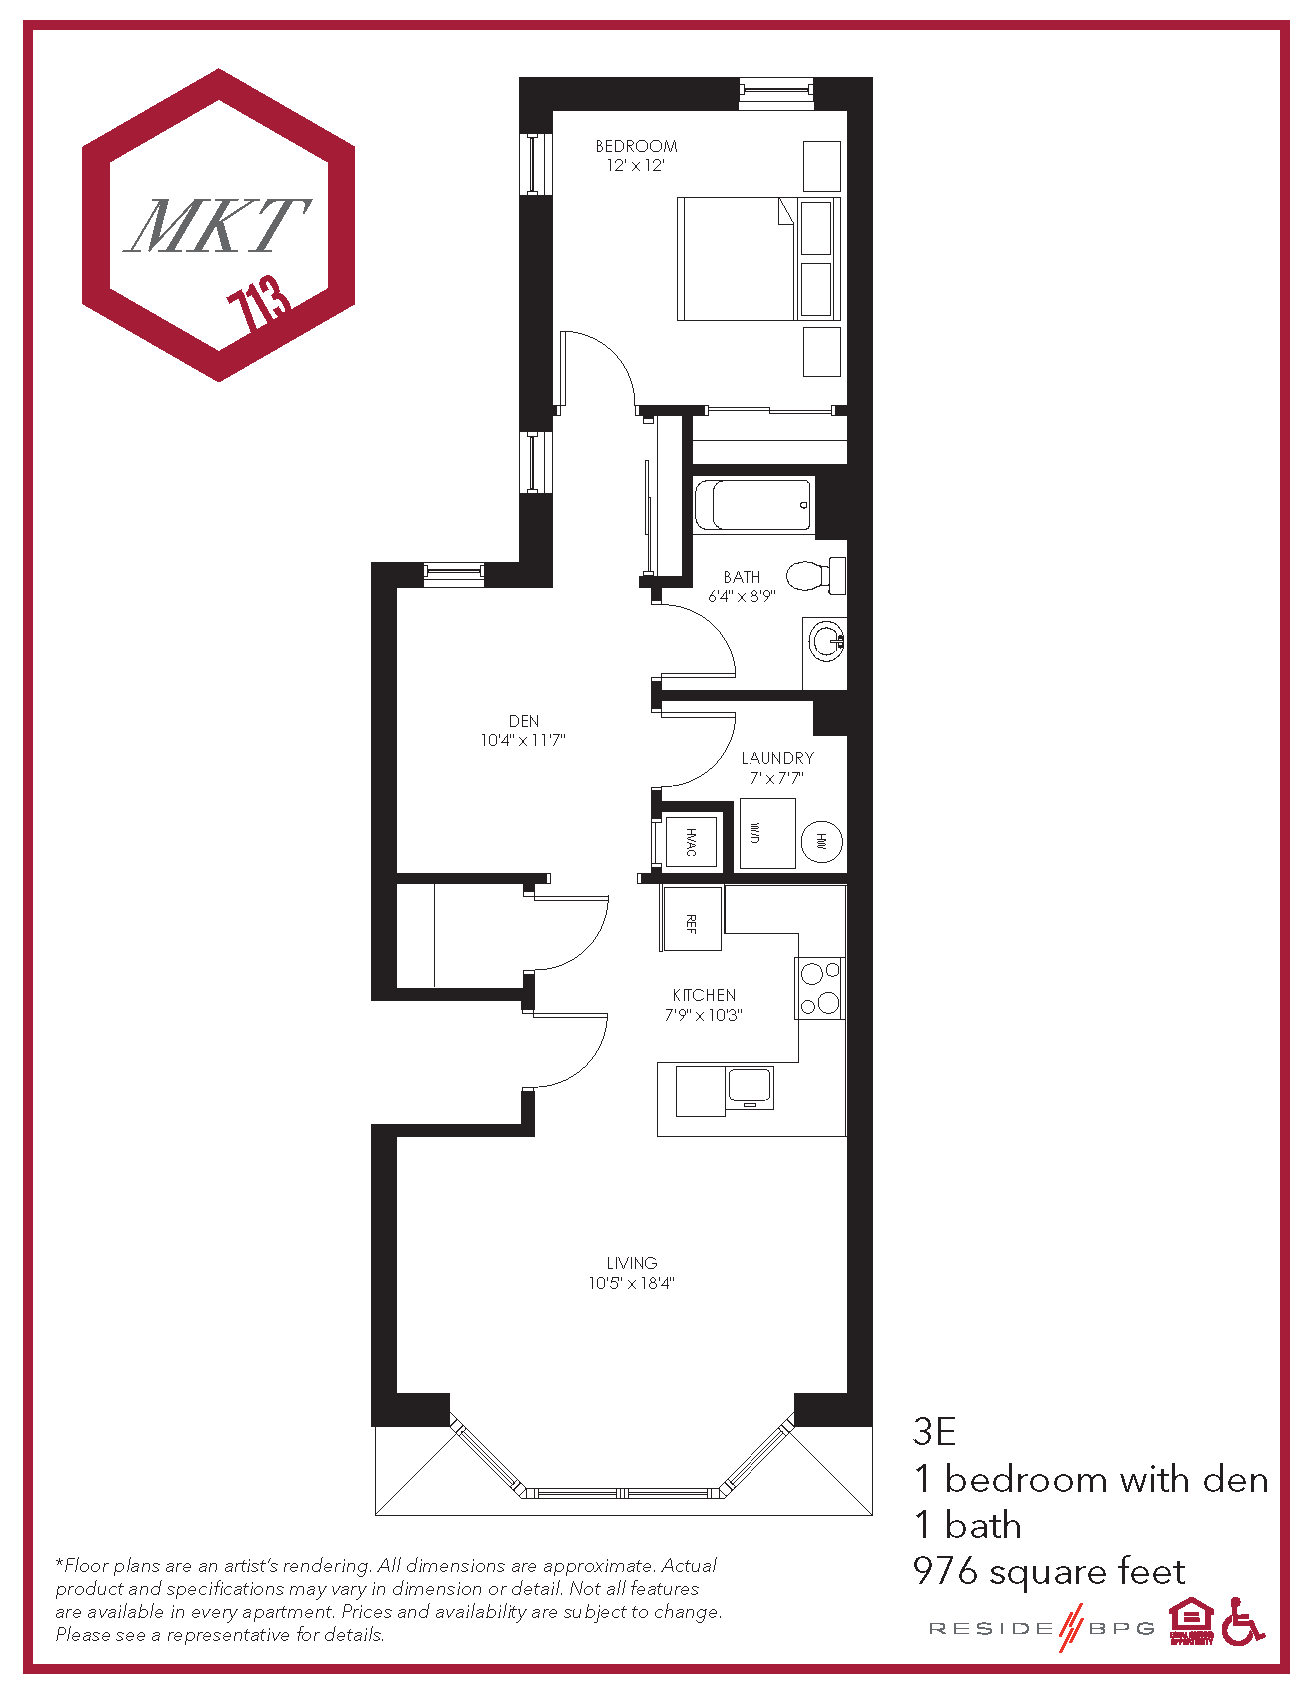 Market Street one bedroom apartment floor plan